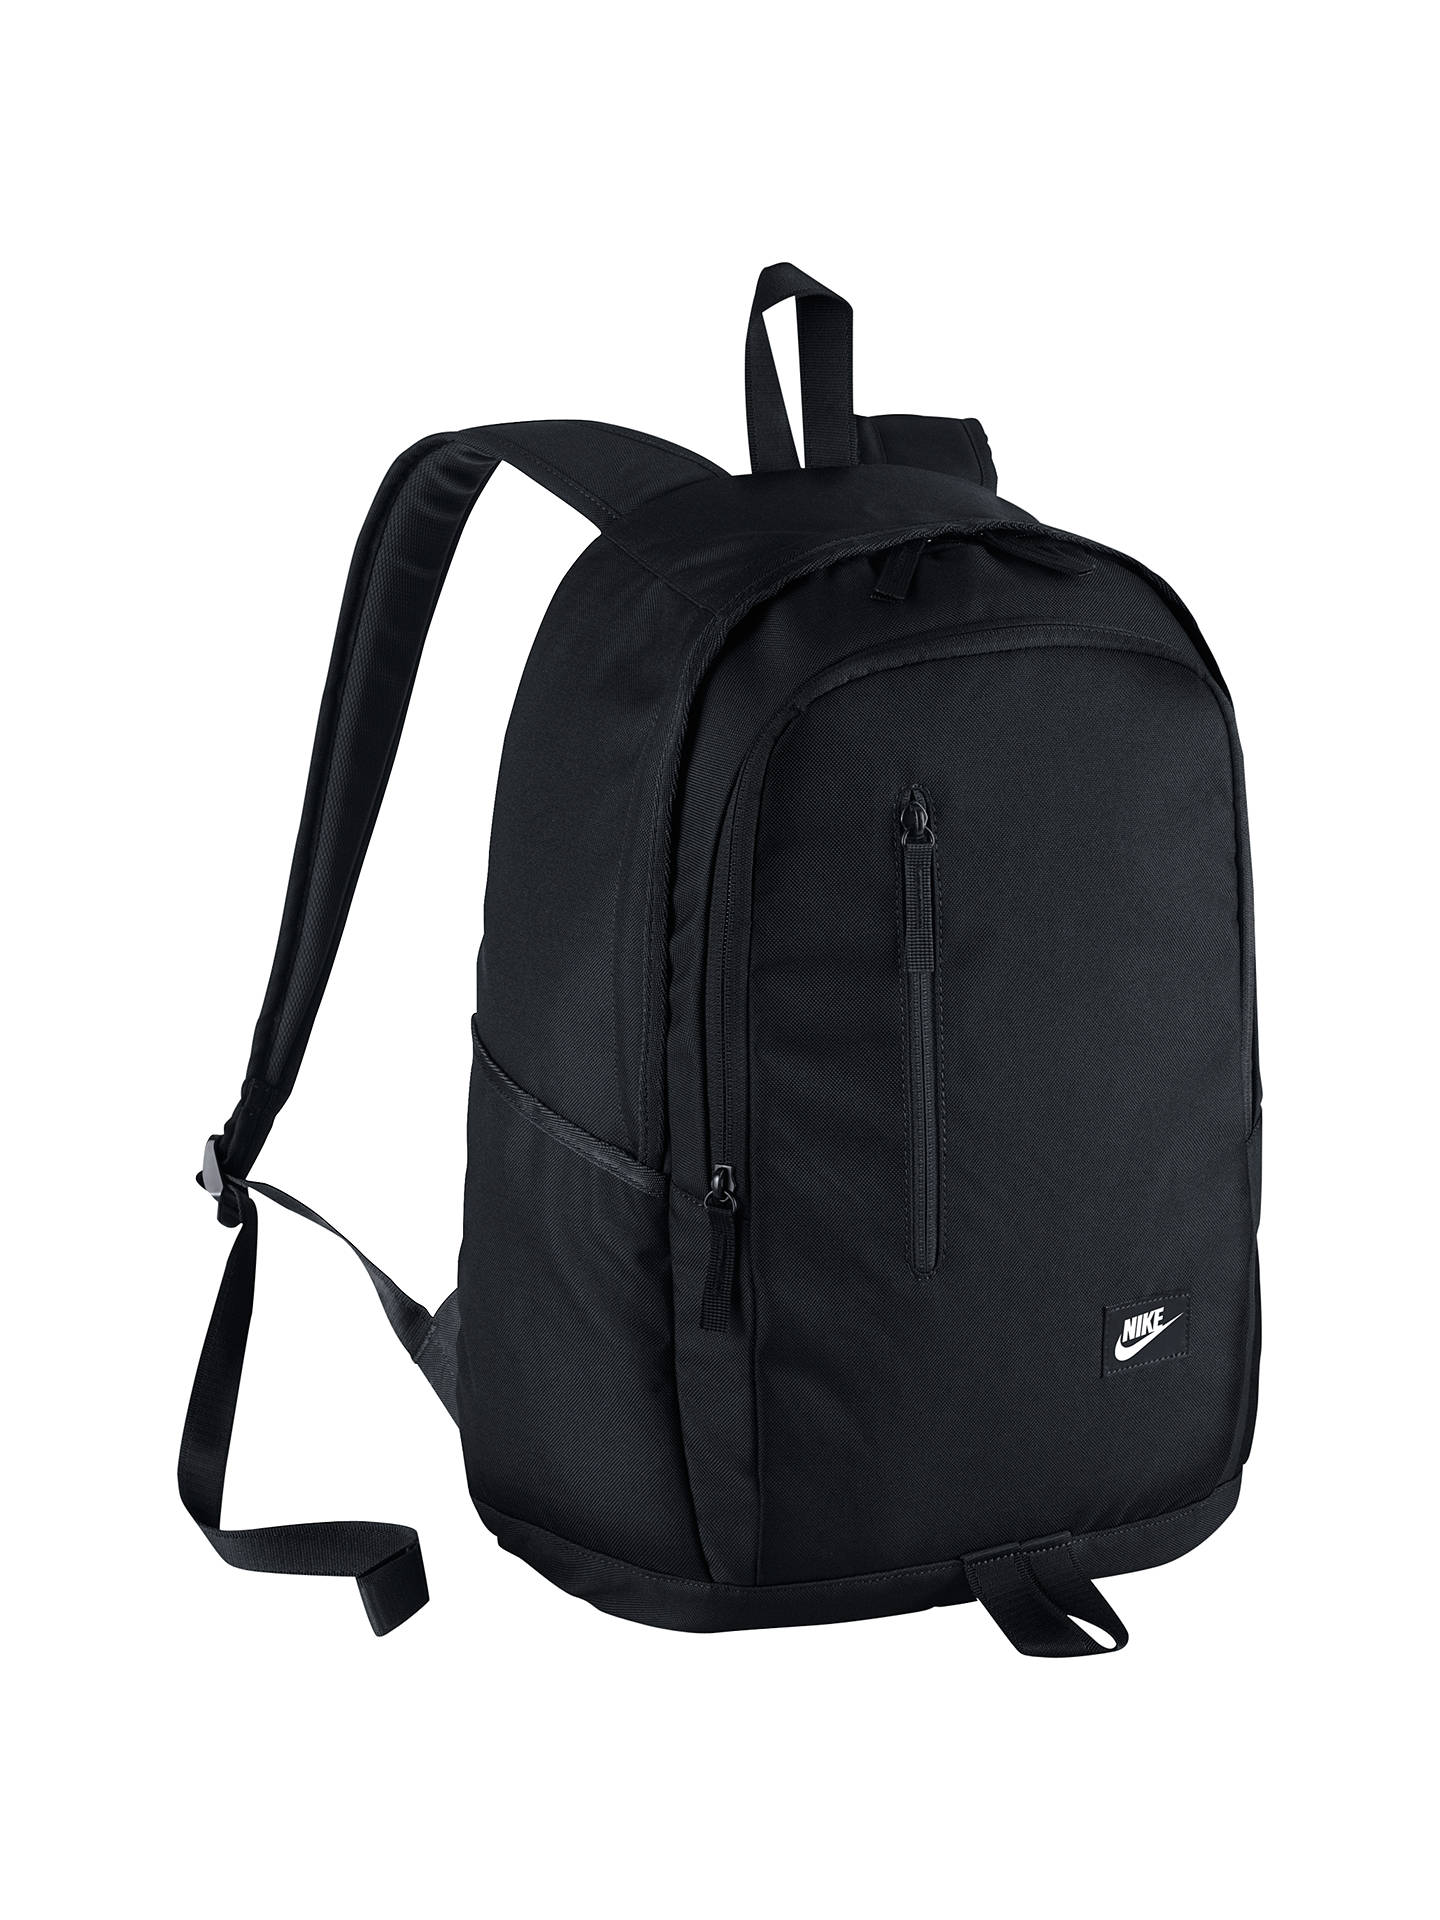 3c96724cc4db Nike Laptop Backpack Canada- Fenix Toulouse Handball